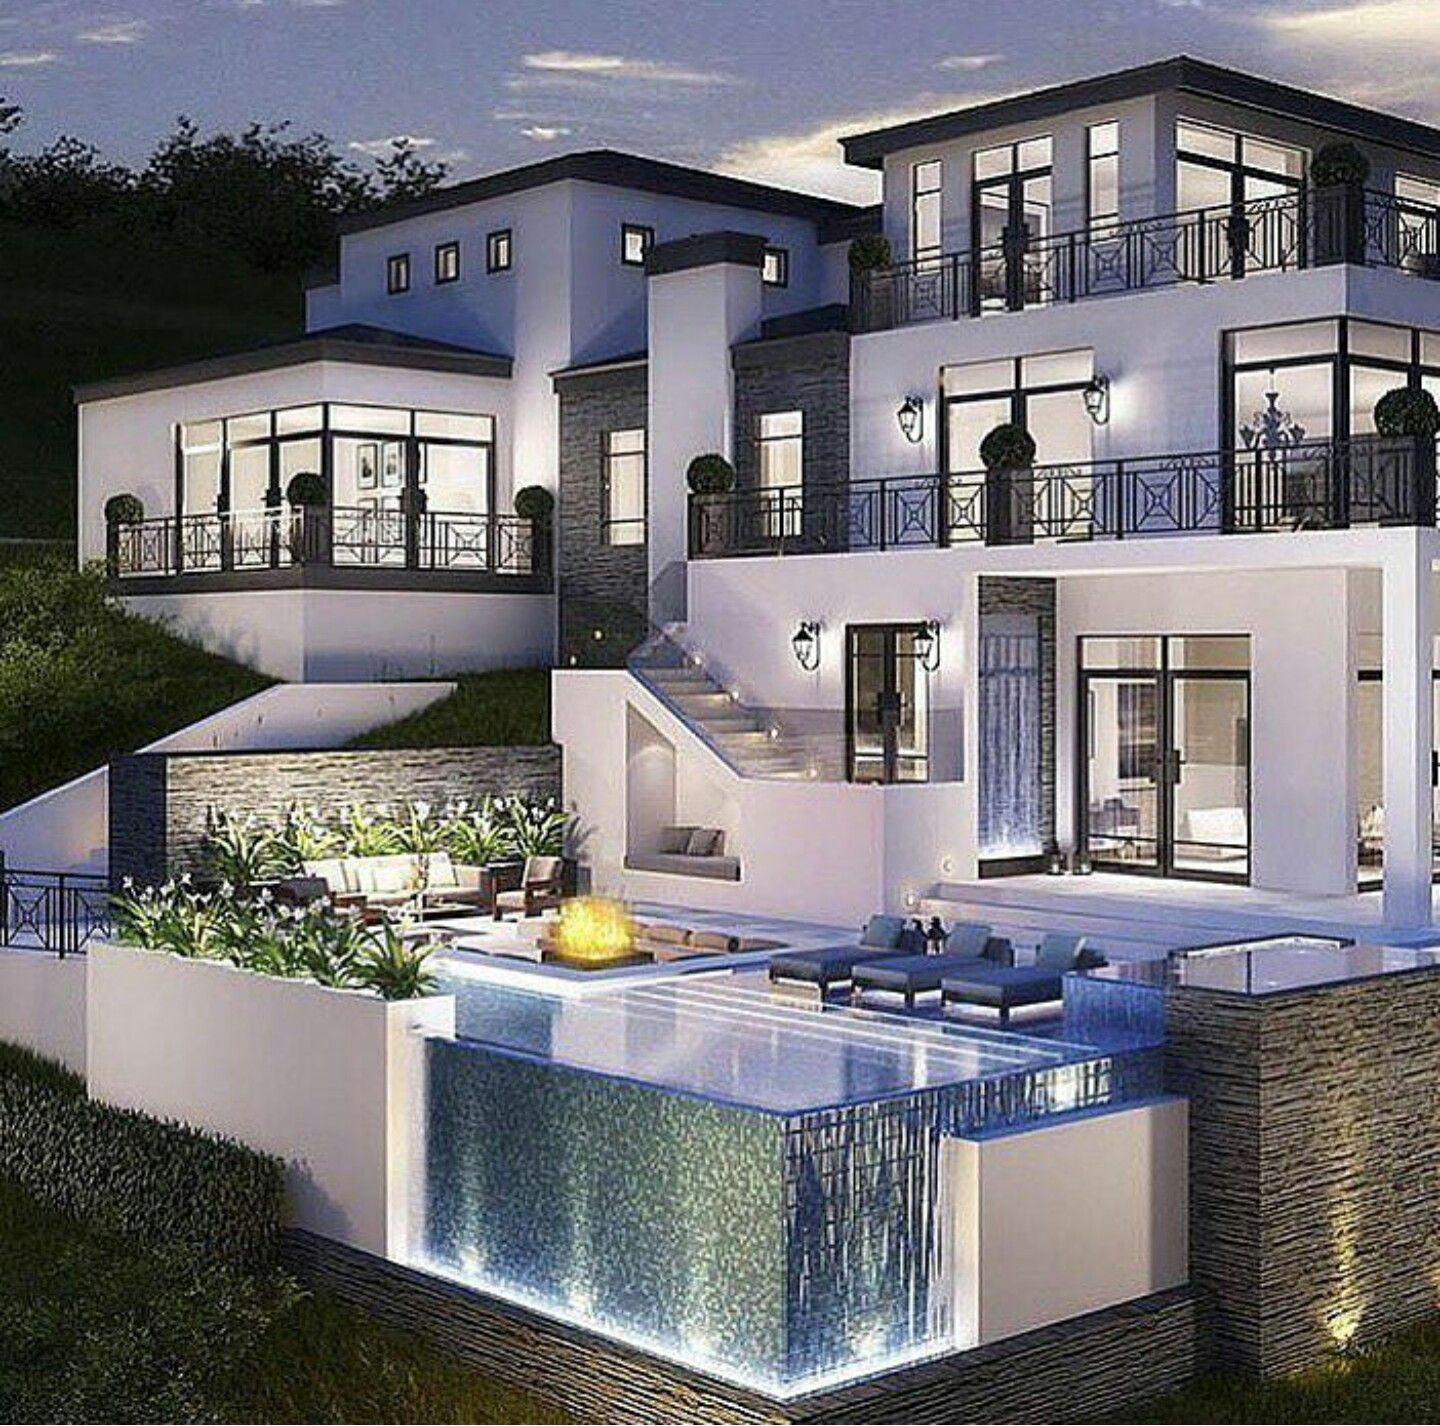 Amazing Los Angeles Hollywood Hills Mansion with